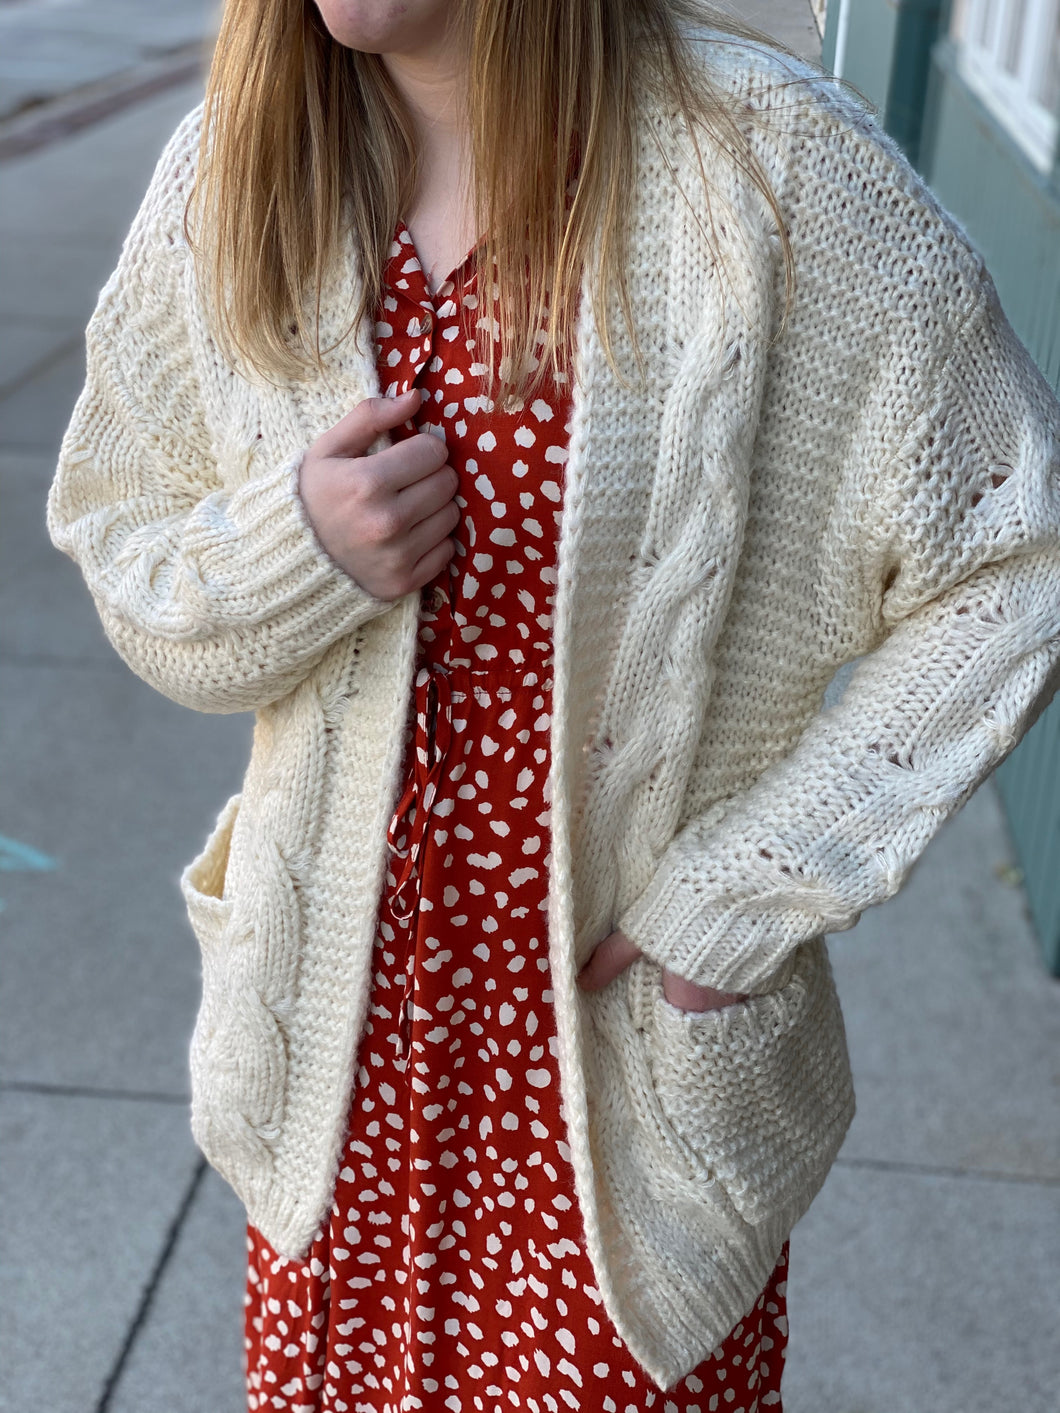 The Ivory Knit Cardigan